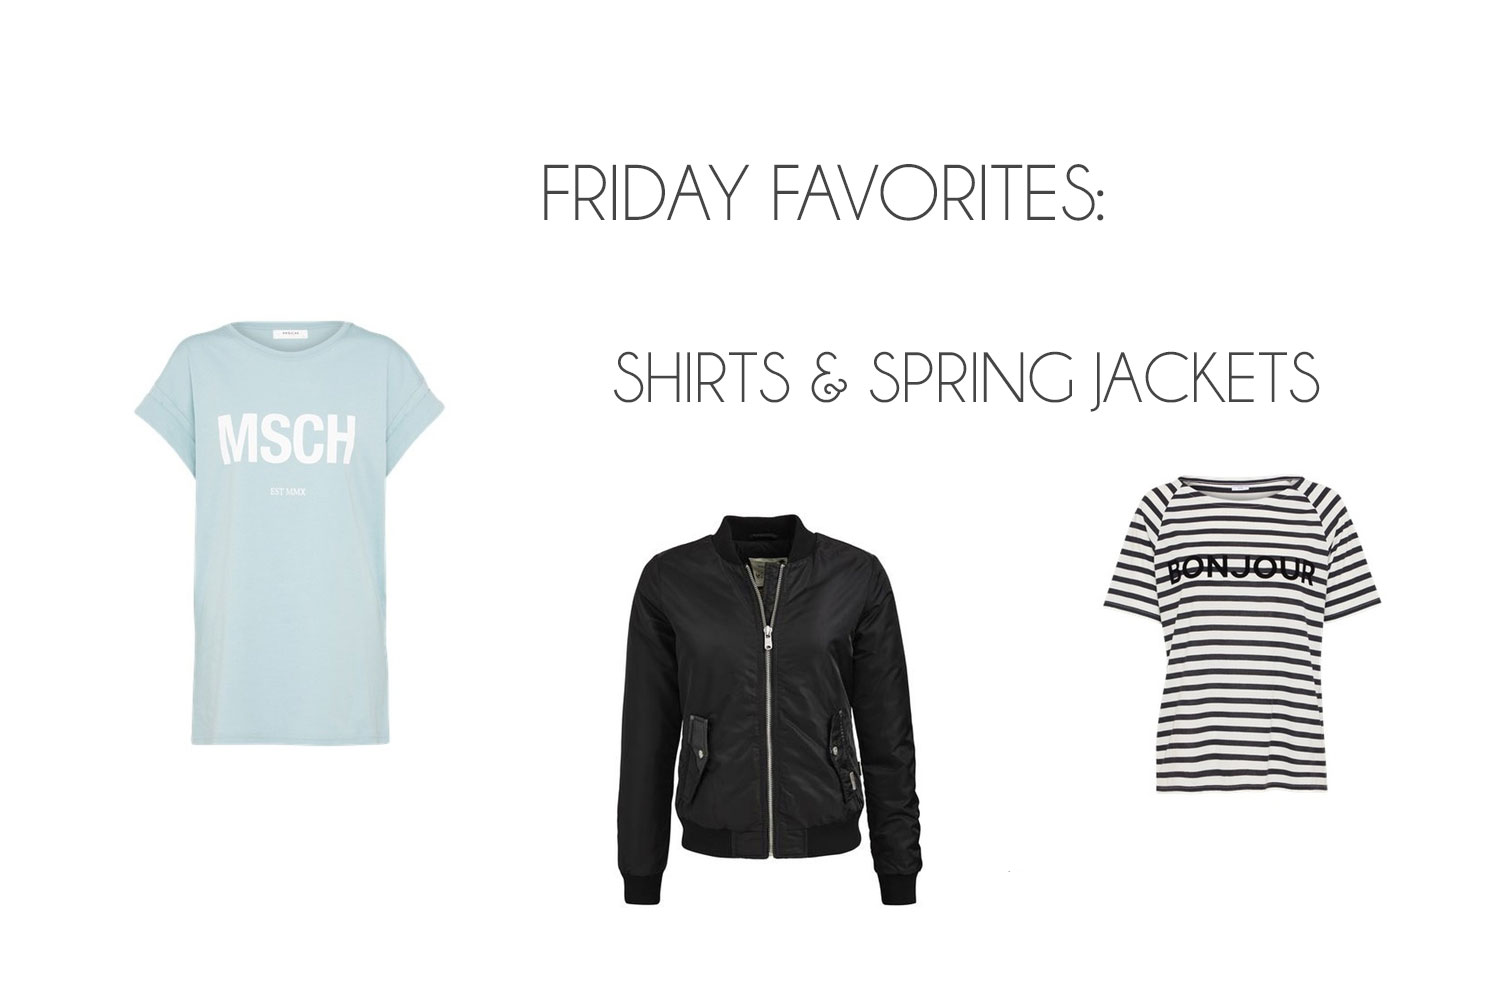 Friday Favorites: Shirts & Spring Jackets